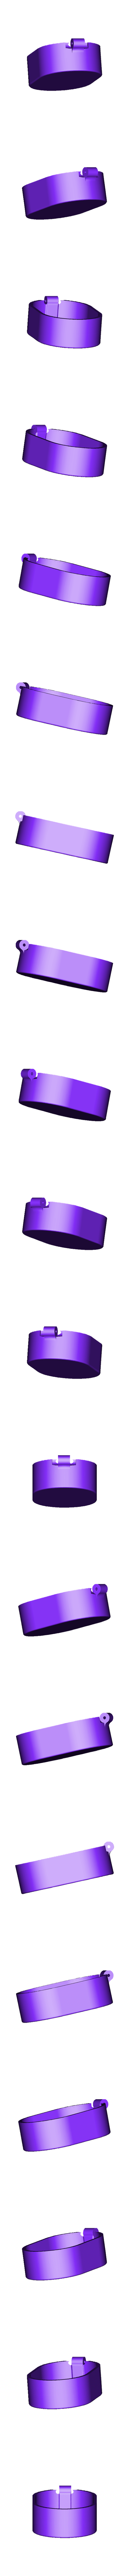 1.stl Download free STL file Electric lighter • Template to 3D print, Ruvimkub